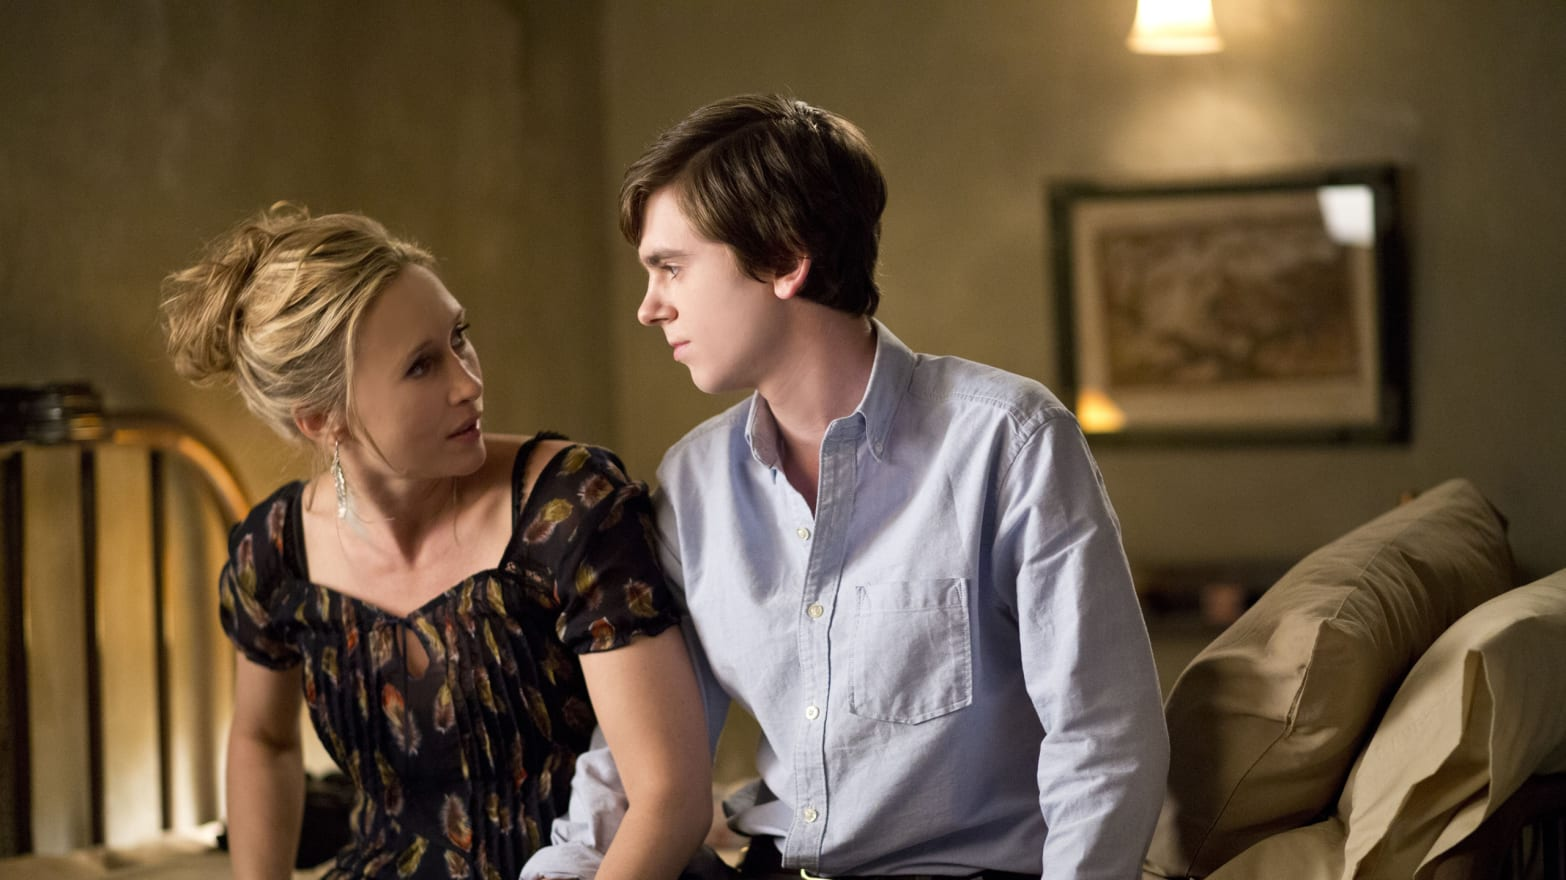 Innocent Sex Scene bates motel' debate: sex scenes, mother issues & implausible